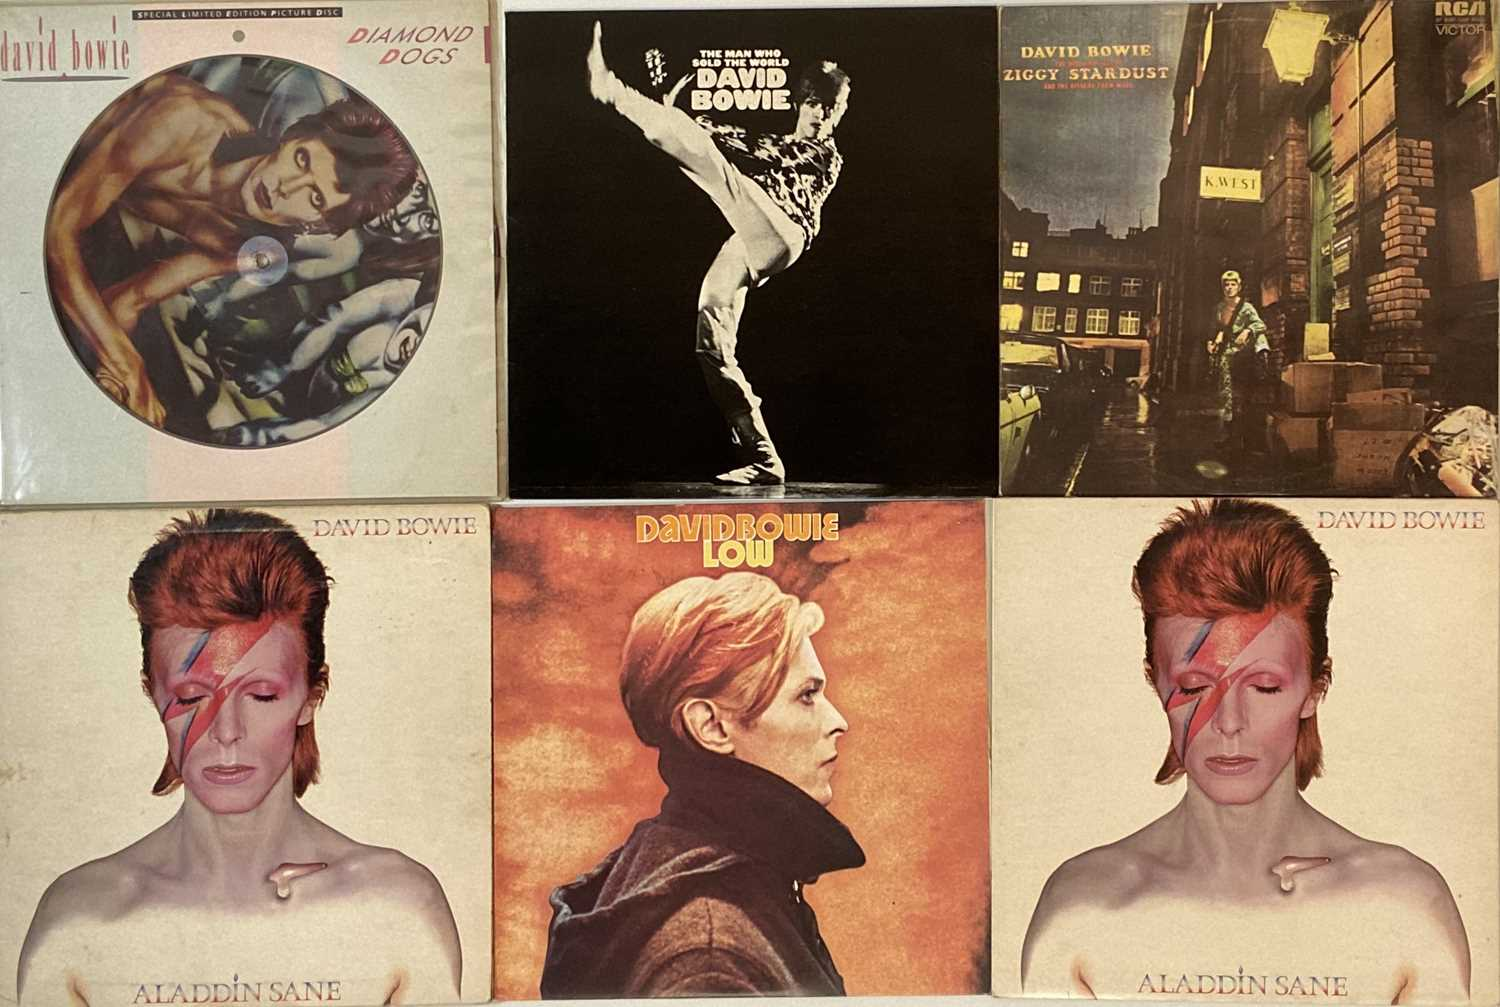 DAVID BOWIE - UK PRESSING LP COLLECTION